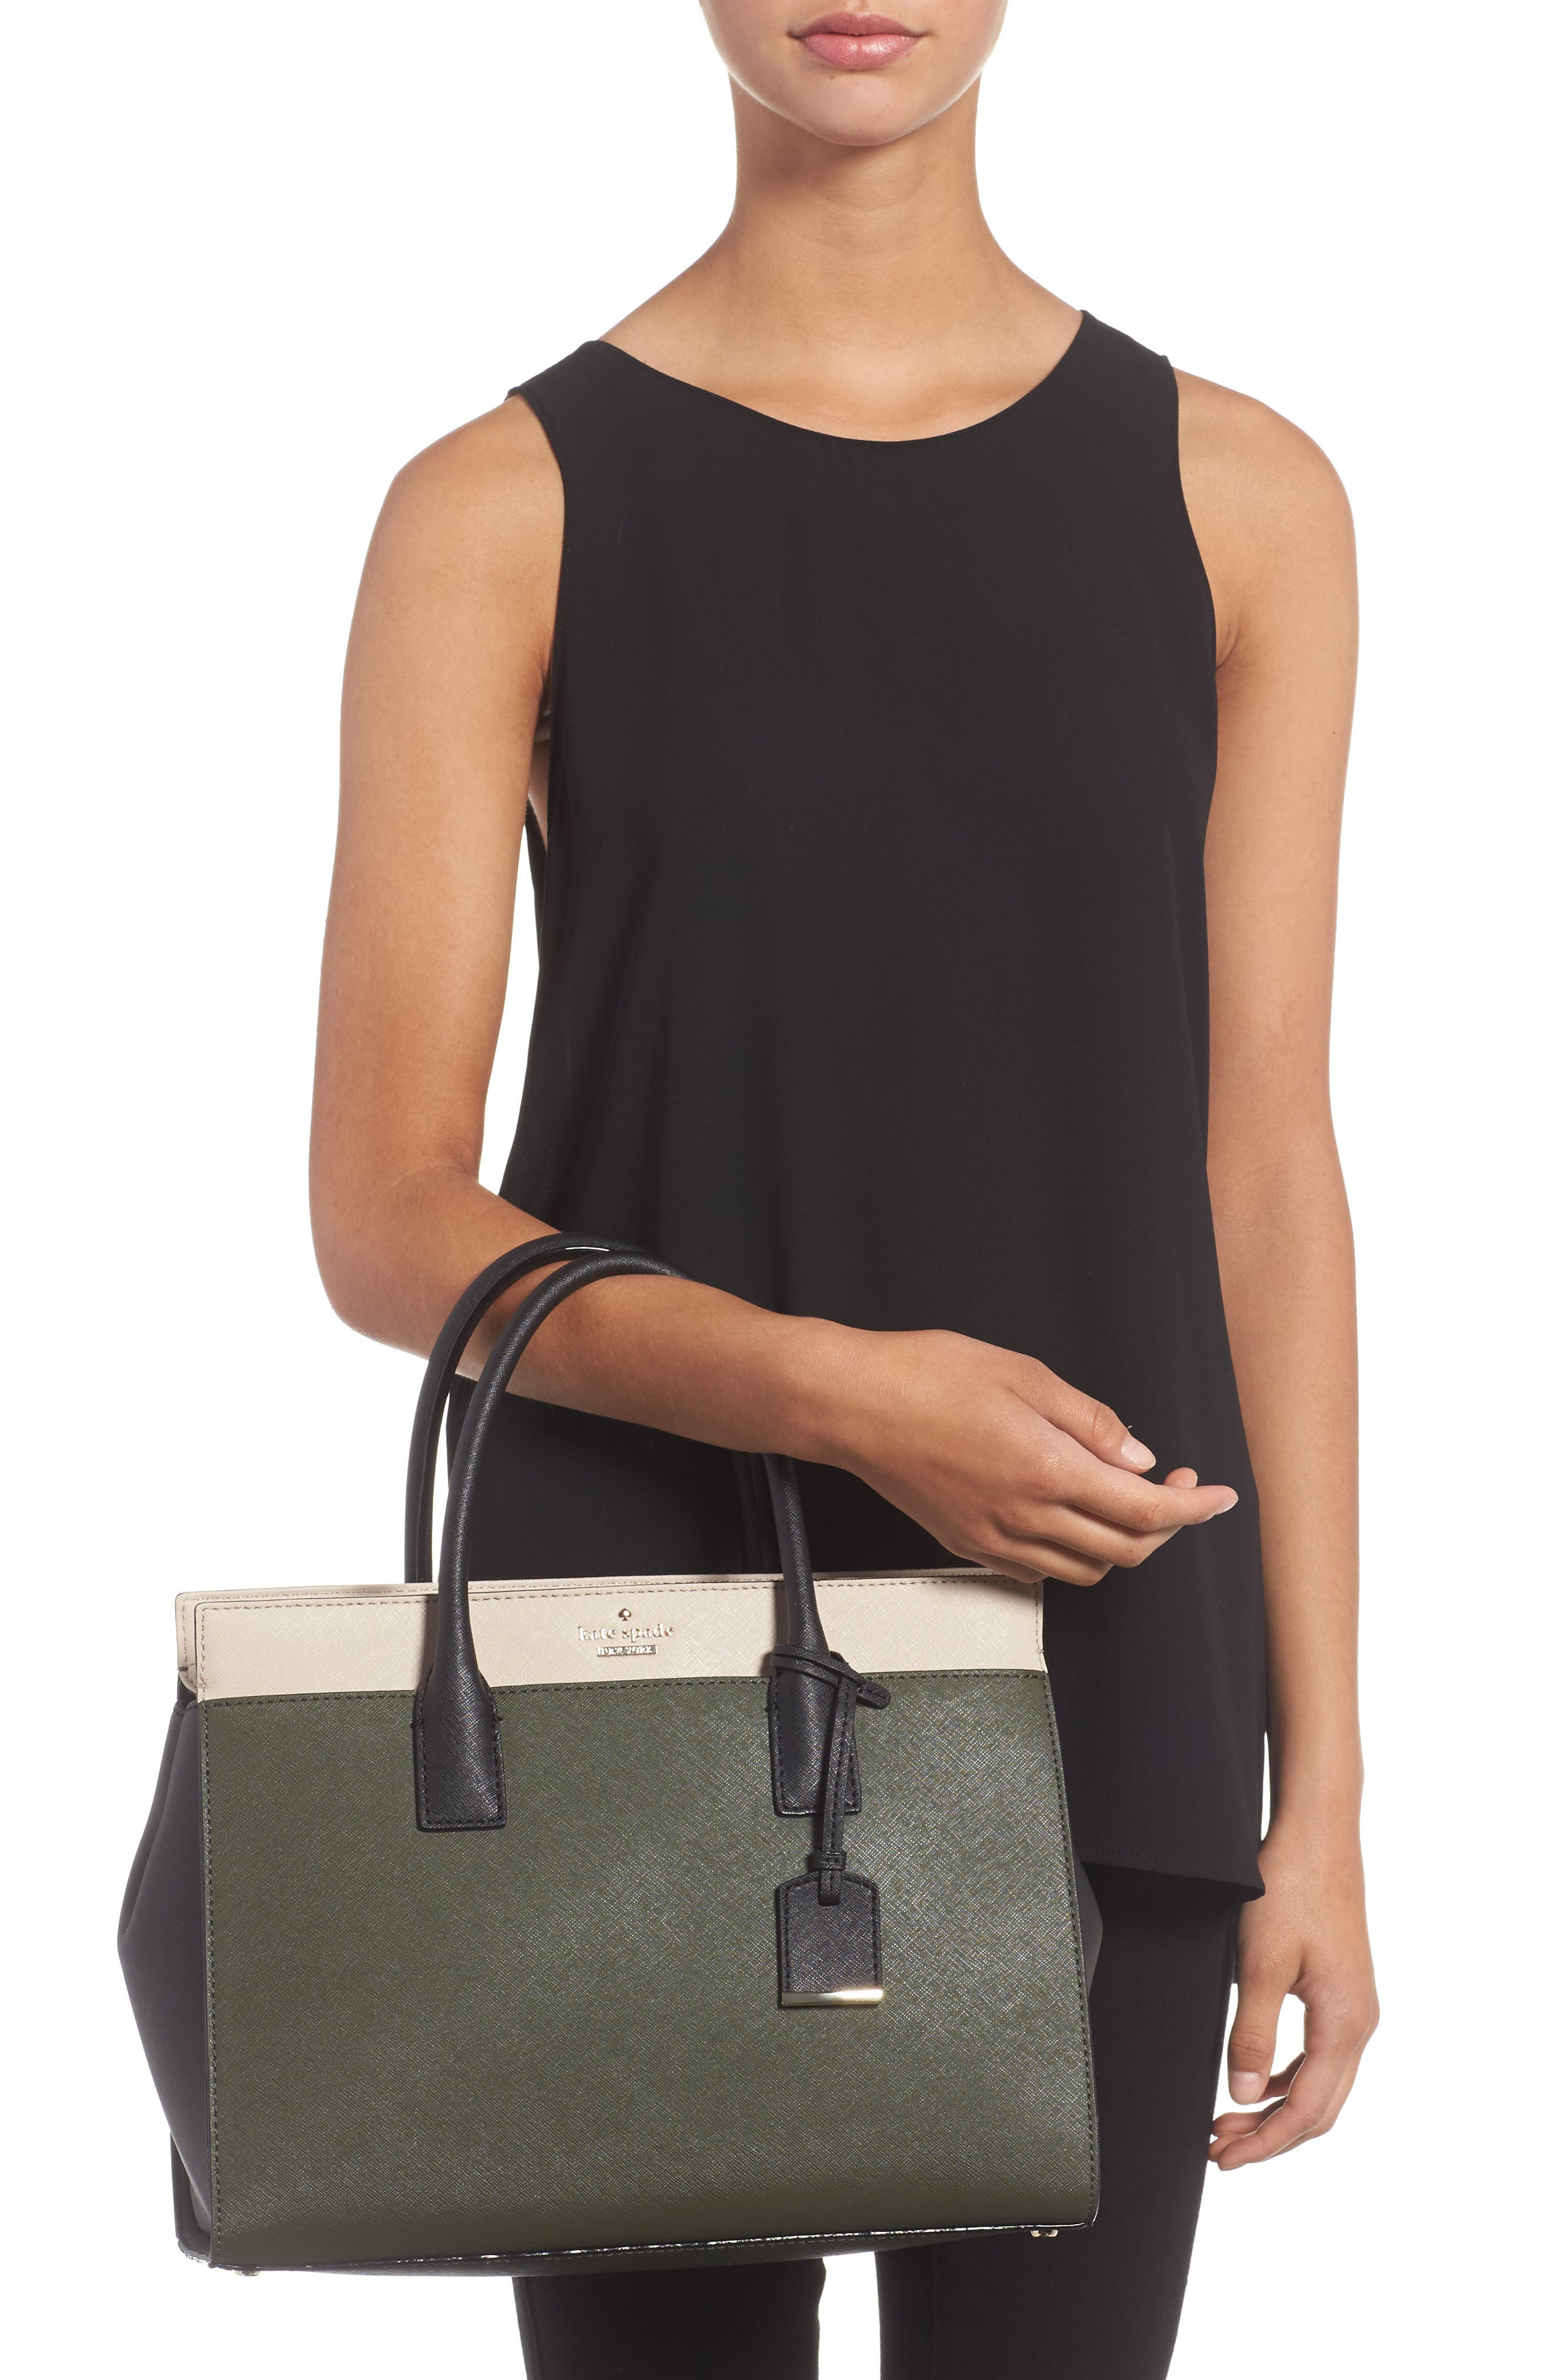 cameron street - candace leather satchel,                             Alternate thumbnail 2, color,                             301